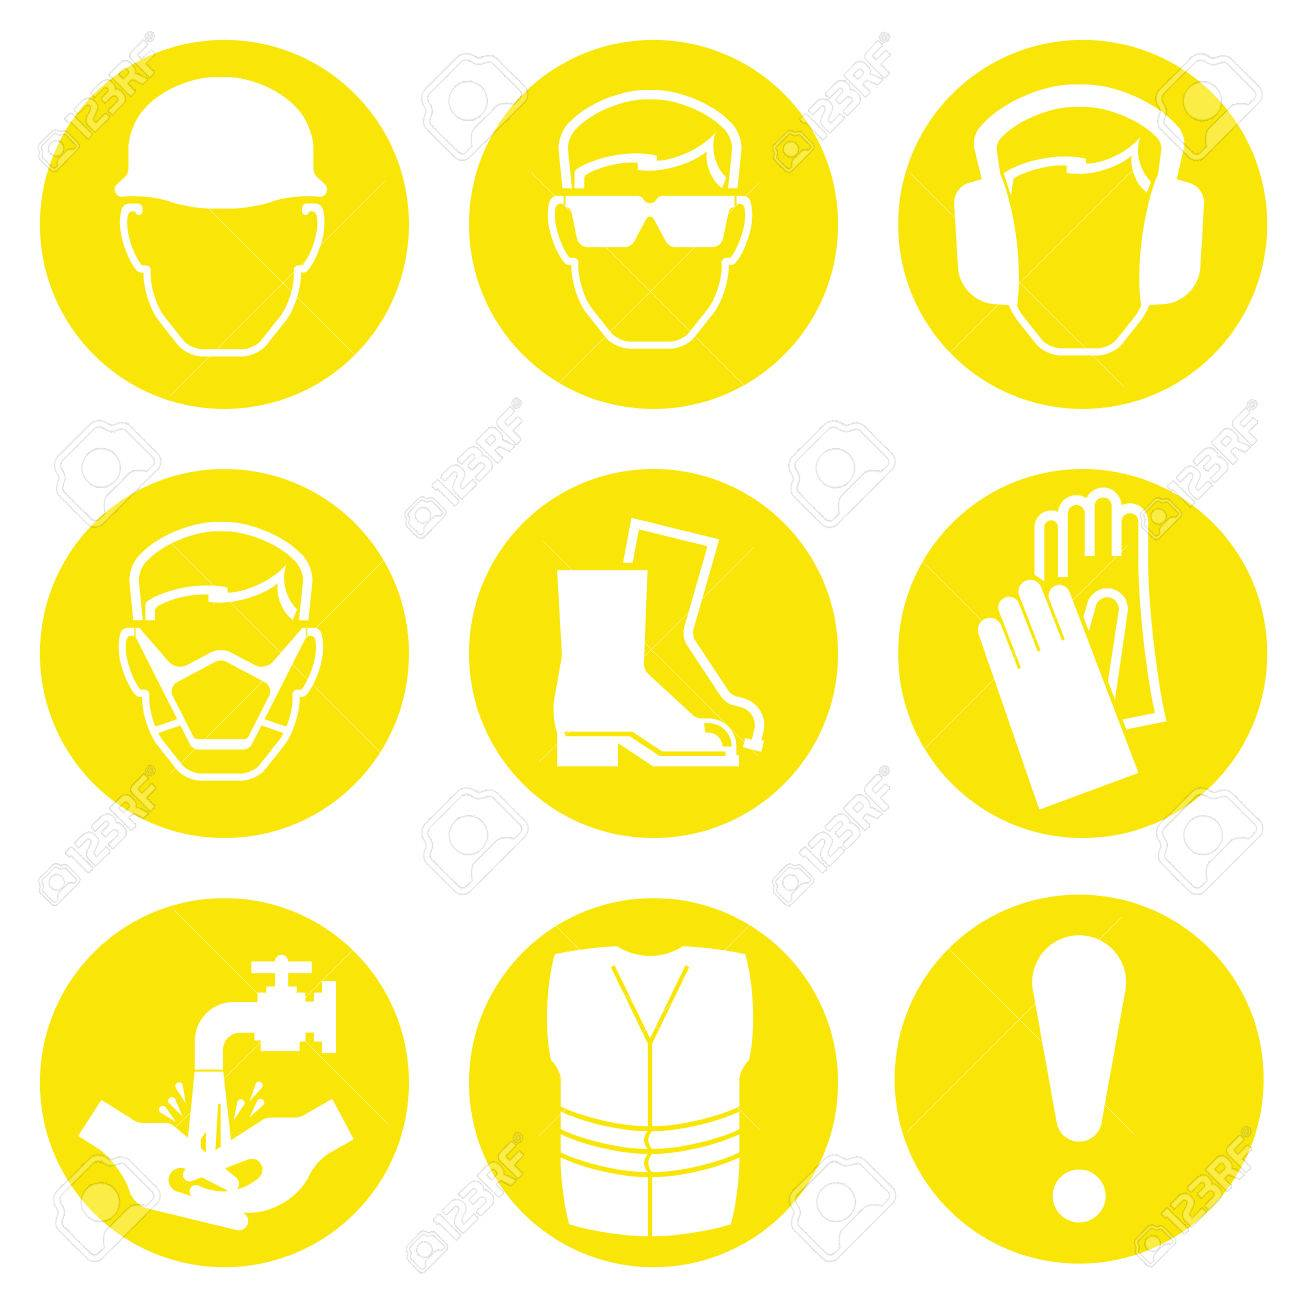 yellow construction industry health and safety icons isolated